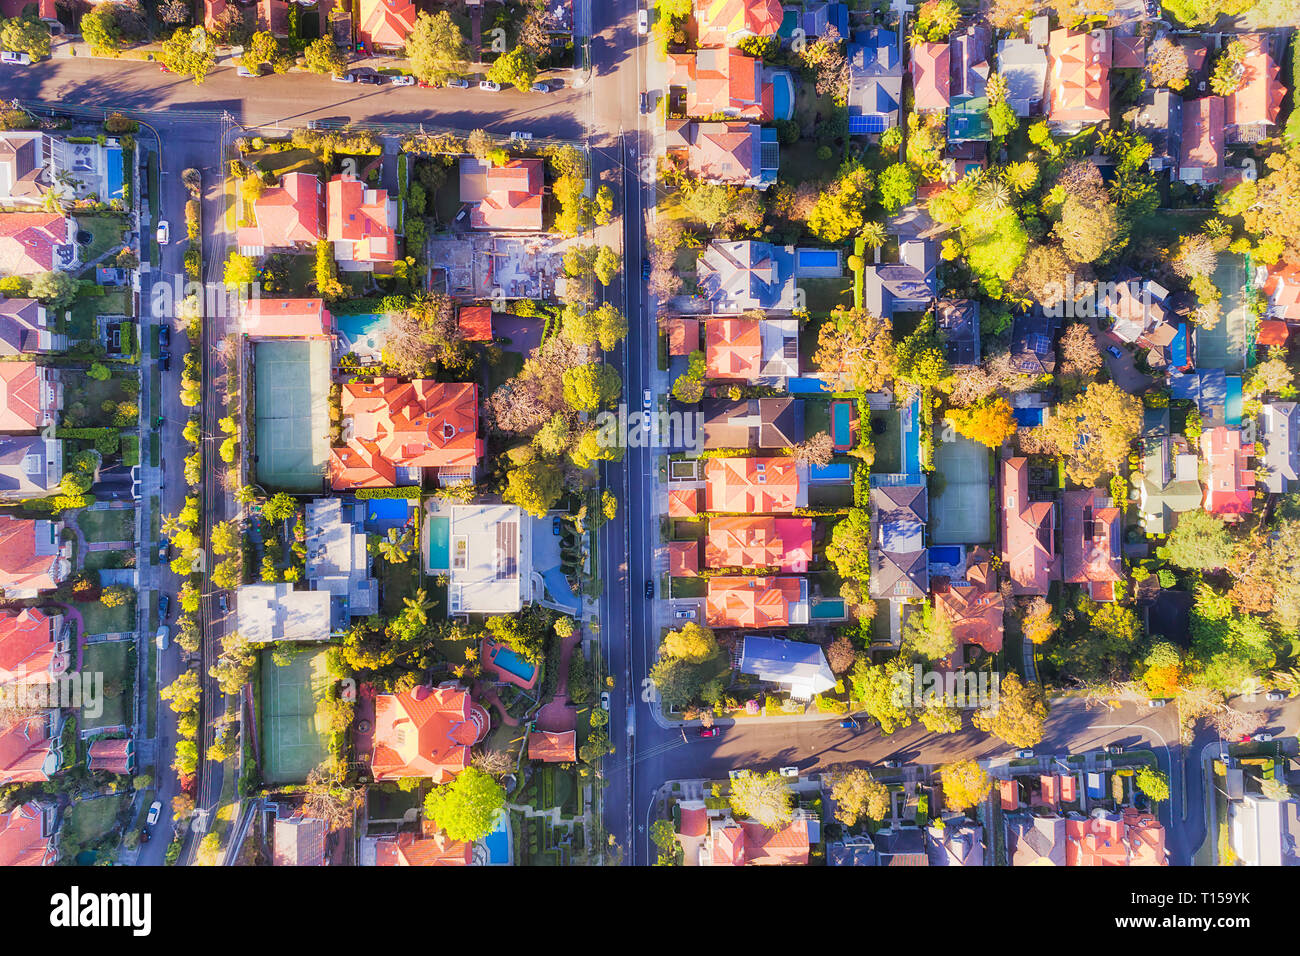 Blocks of prestigeous wealthy houses on lower North Shore in Sydney - rich suburb of Mosman in elevated top down aerial view. - Stock Image